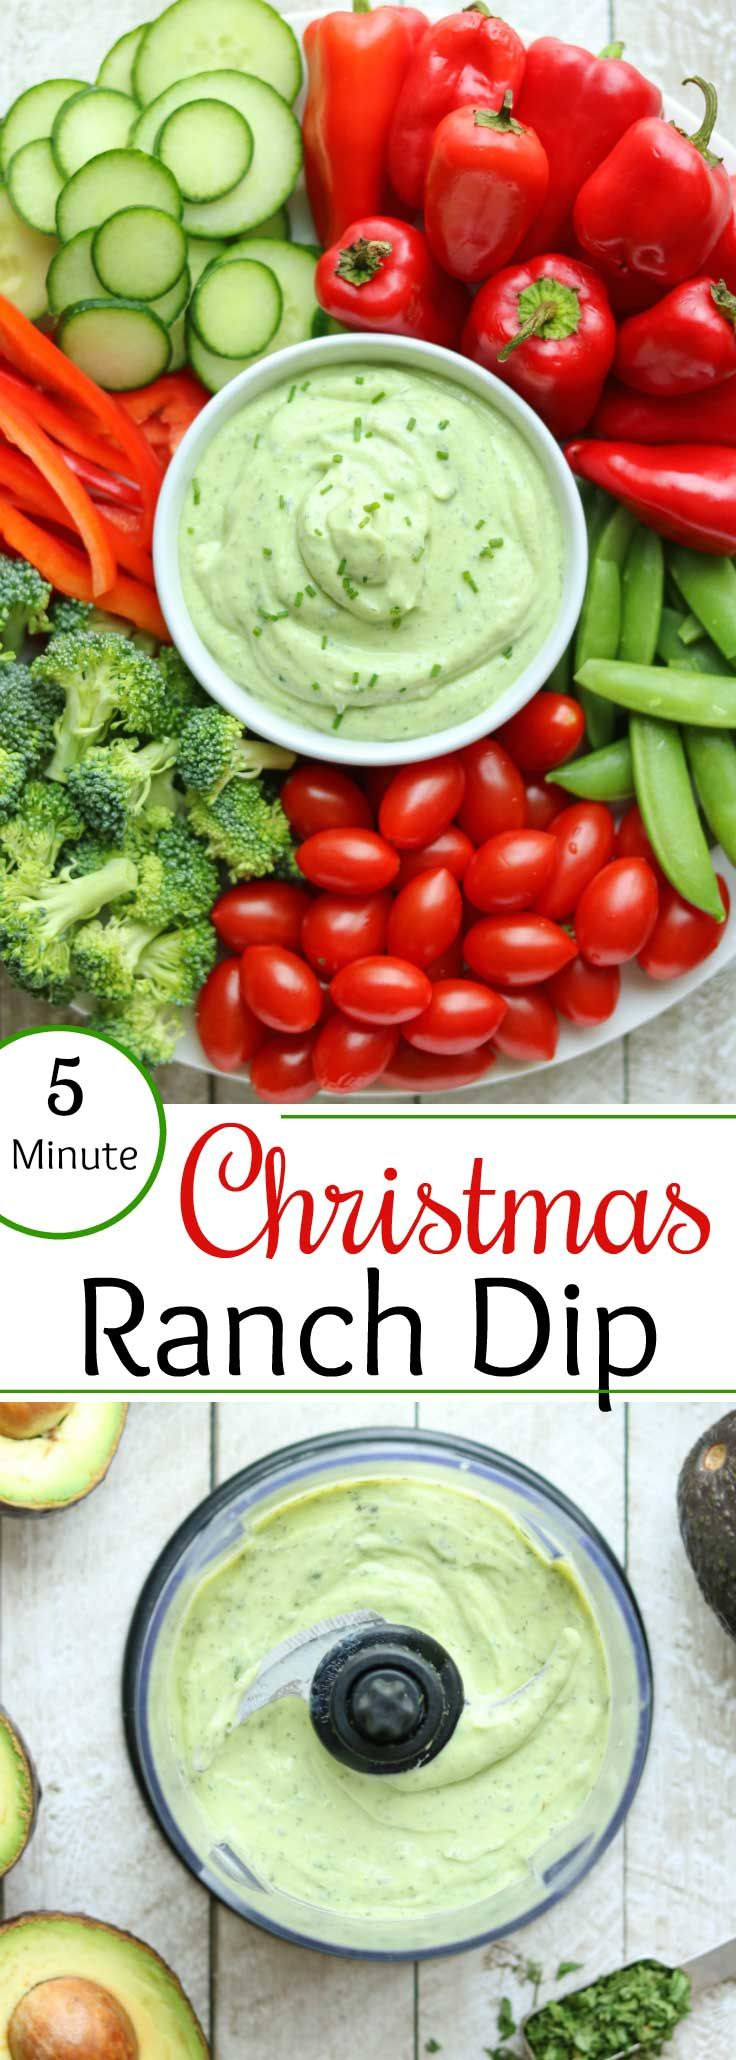 A perfect Christmas appetizer! Surround our pretty green Avocado Ranch Dip with festive red and green veggies! And, since it's ready in just minutes, this appetizer recipe is great for busy hostesses and last-minute parties. So creamy and delicious, like a cross between traditional ranch dip and guacamole! #Christmas #Christmasrecipe #avocado #greekyogurt #appetizer #healthysnacks #appetizerfood #holidayrecipes #healthyrecipes #ranchdip #veggiedip | www.TwoHealthyKitchens.com